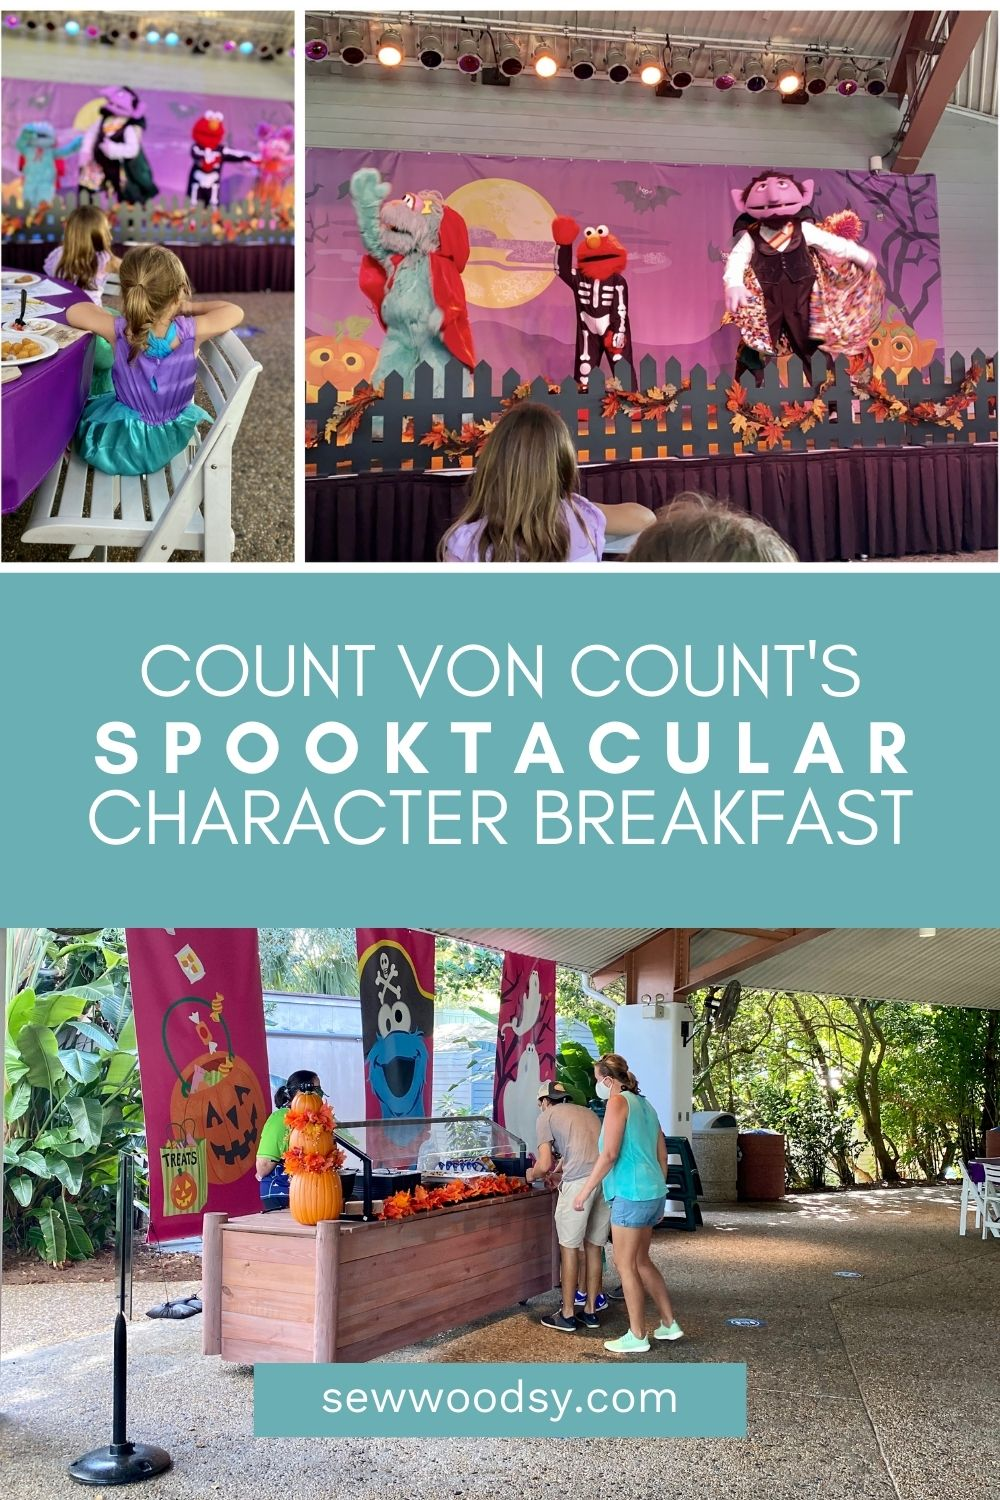 Three images from Count Von Count's character breakfast at SeaWorld.